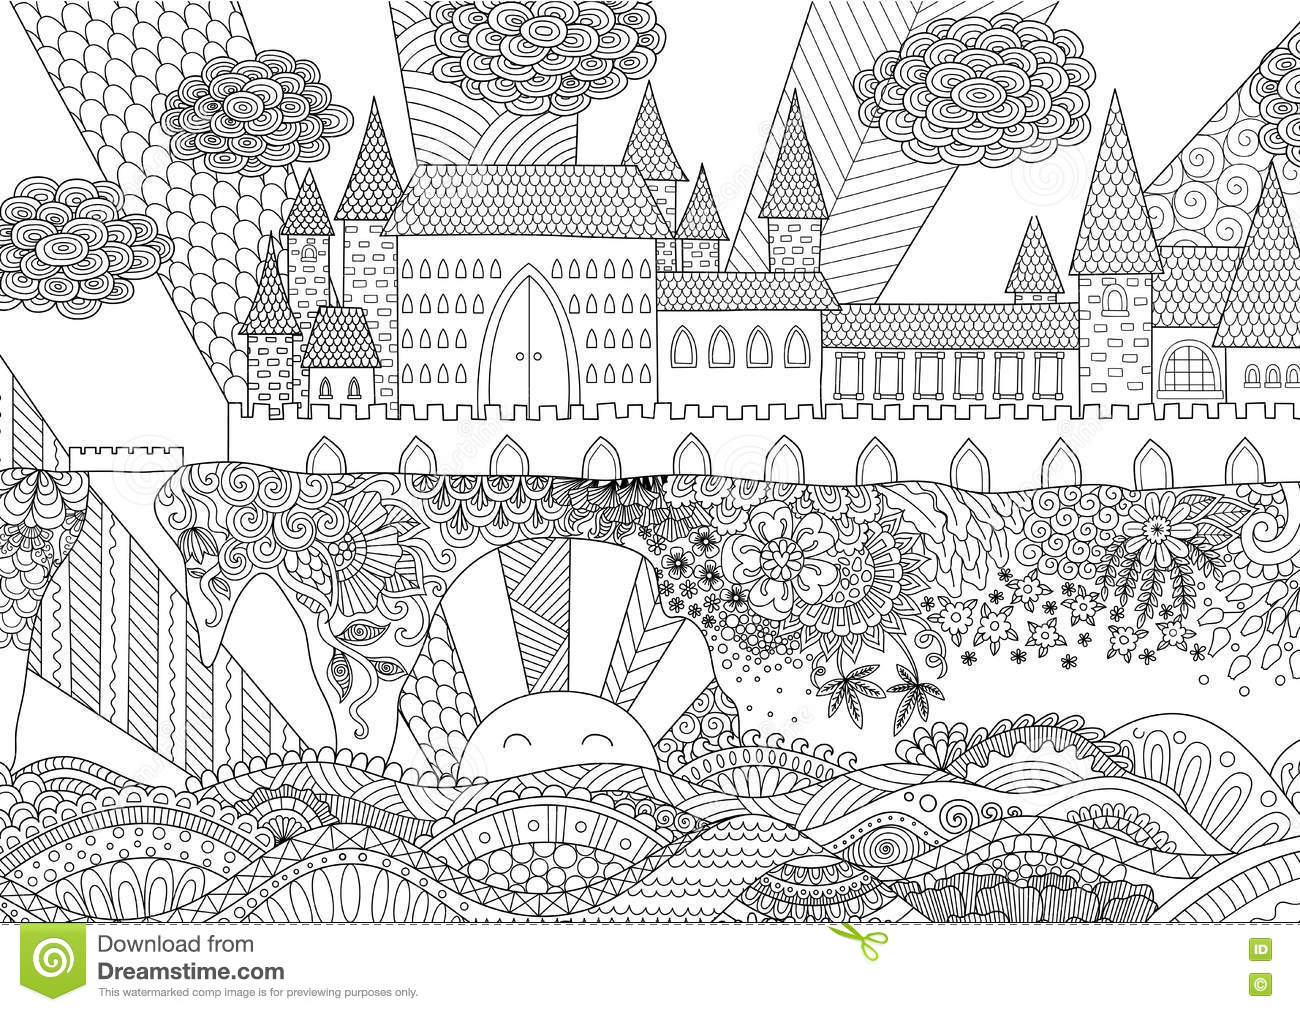 Coloring pages for adults landscapes - Zendoodle Castle Landscape For Background Adult Coloring And Design Element Stock